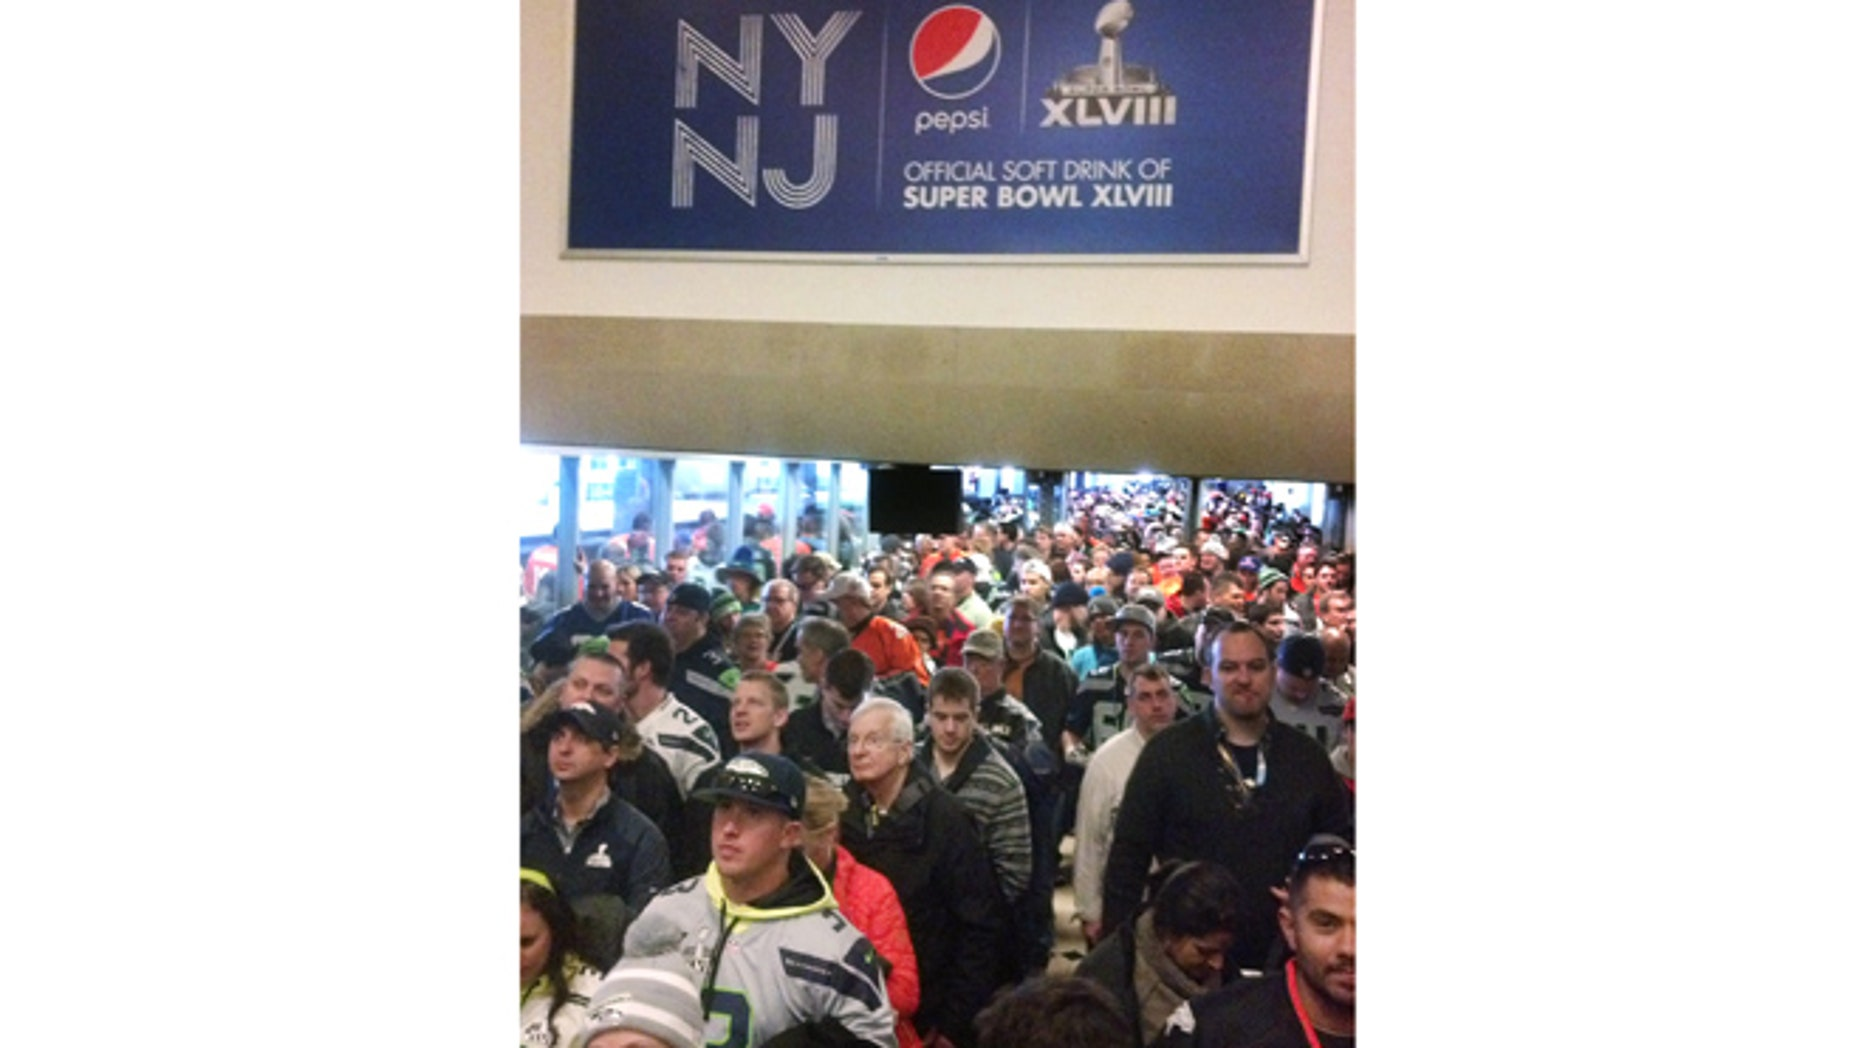 Feb. 2, 2014: Fans from Manhattan bound for MetLife Stadium and the Super Bowl crowd a NJ Transit station in Secaucus, N.J.